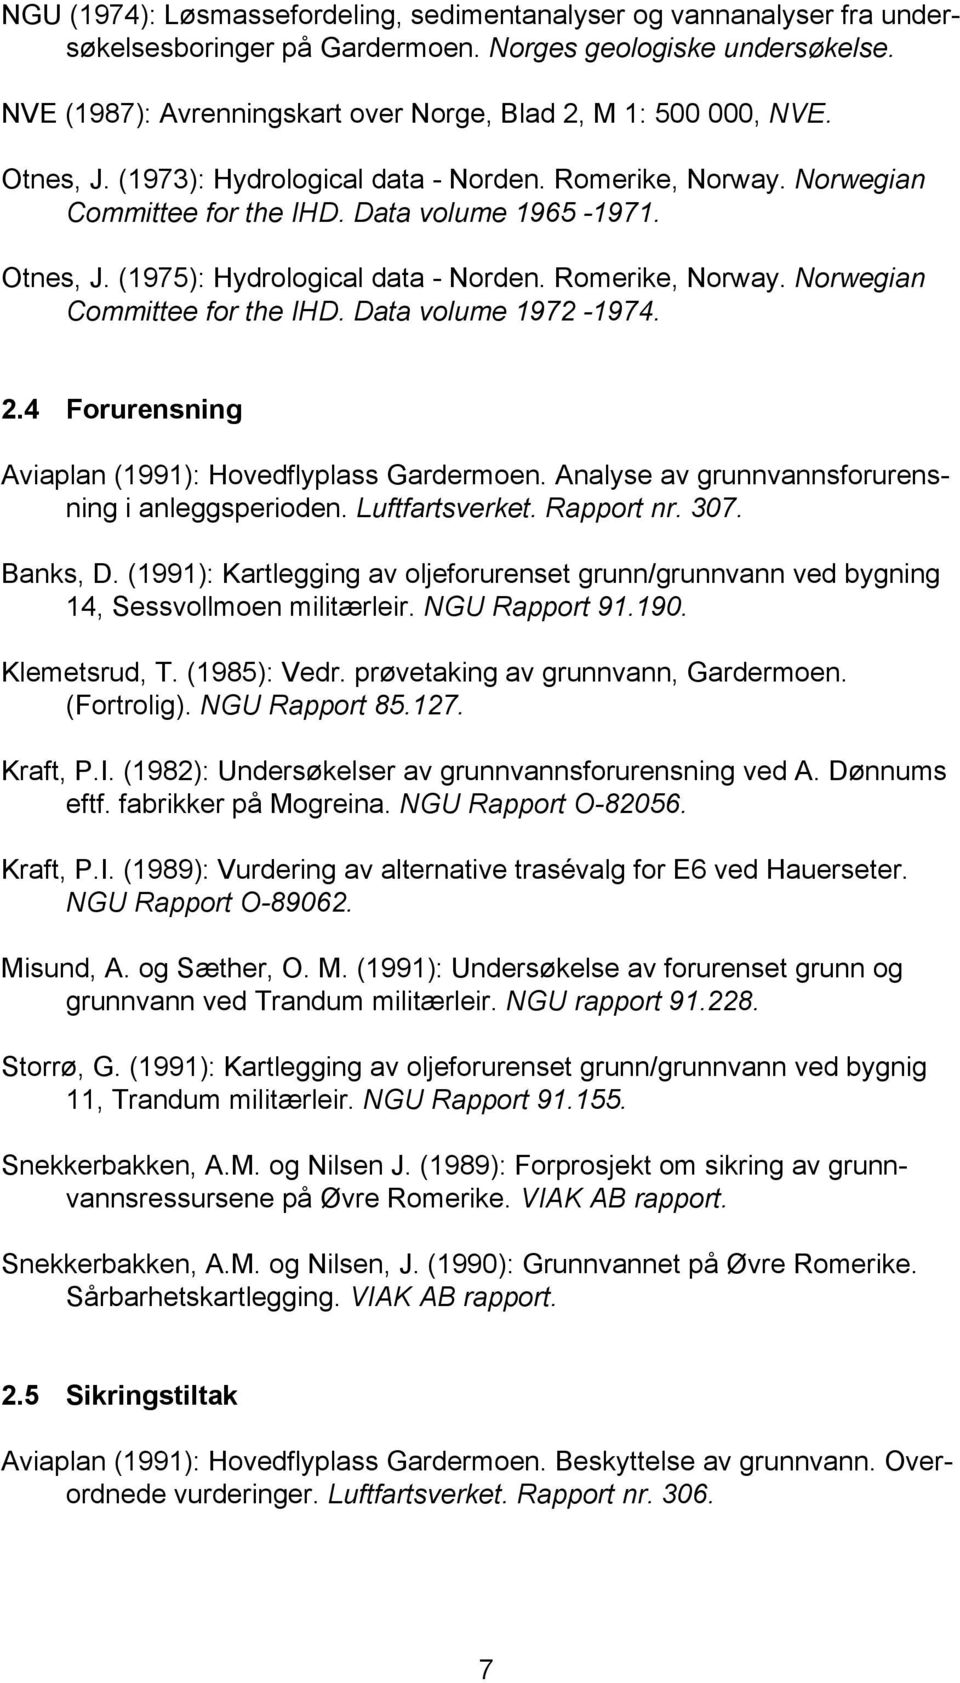 Romerike, Norway. Norwegian Committee for the IHD. Data volume 1972-1974. 2.4 Forurensning Aviaplan (1991): Hovedflyplass Gardermoen. Analyse av grunnvannsforurensning i anleggsperioden.